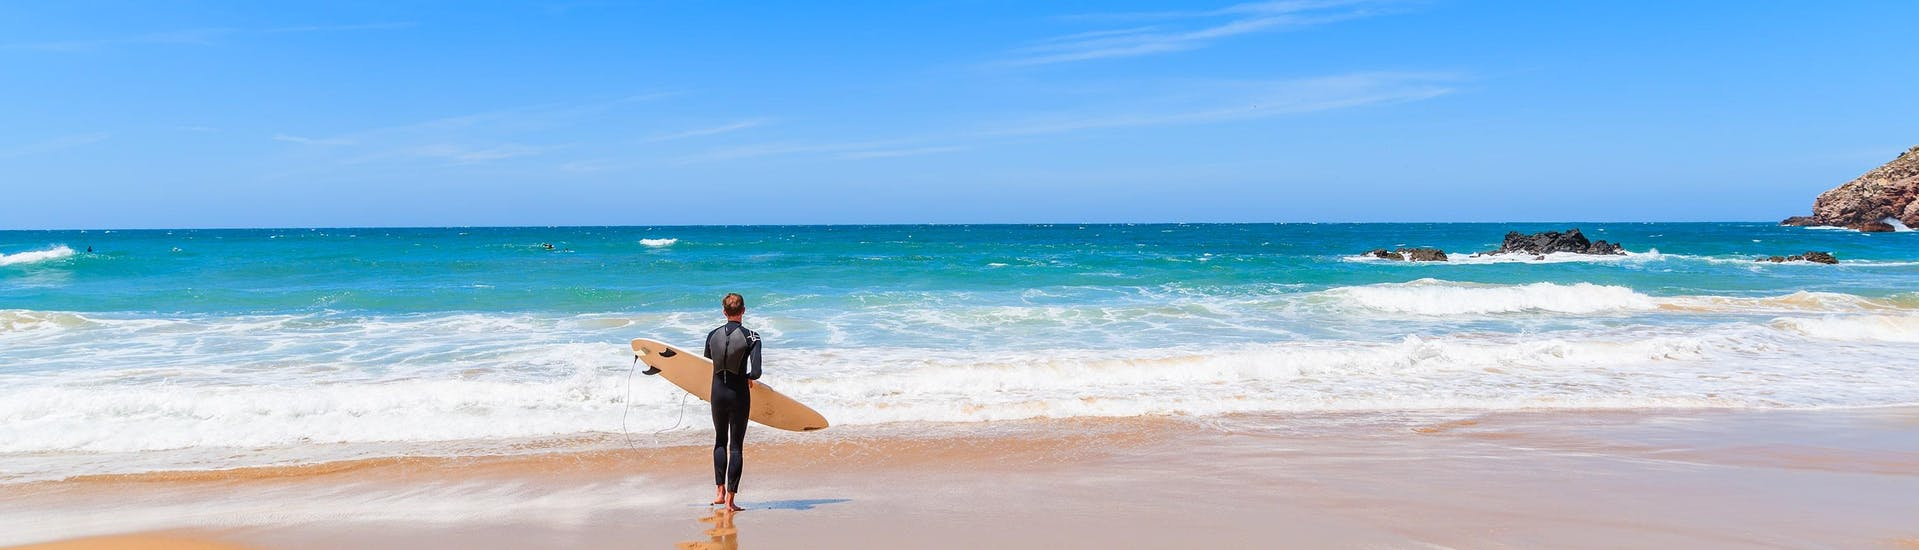 A young woman surfing in the clear blue waters of the surfing and SUP hotspot of Albufeira.